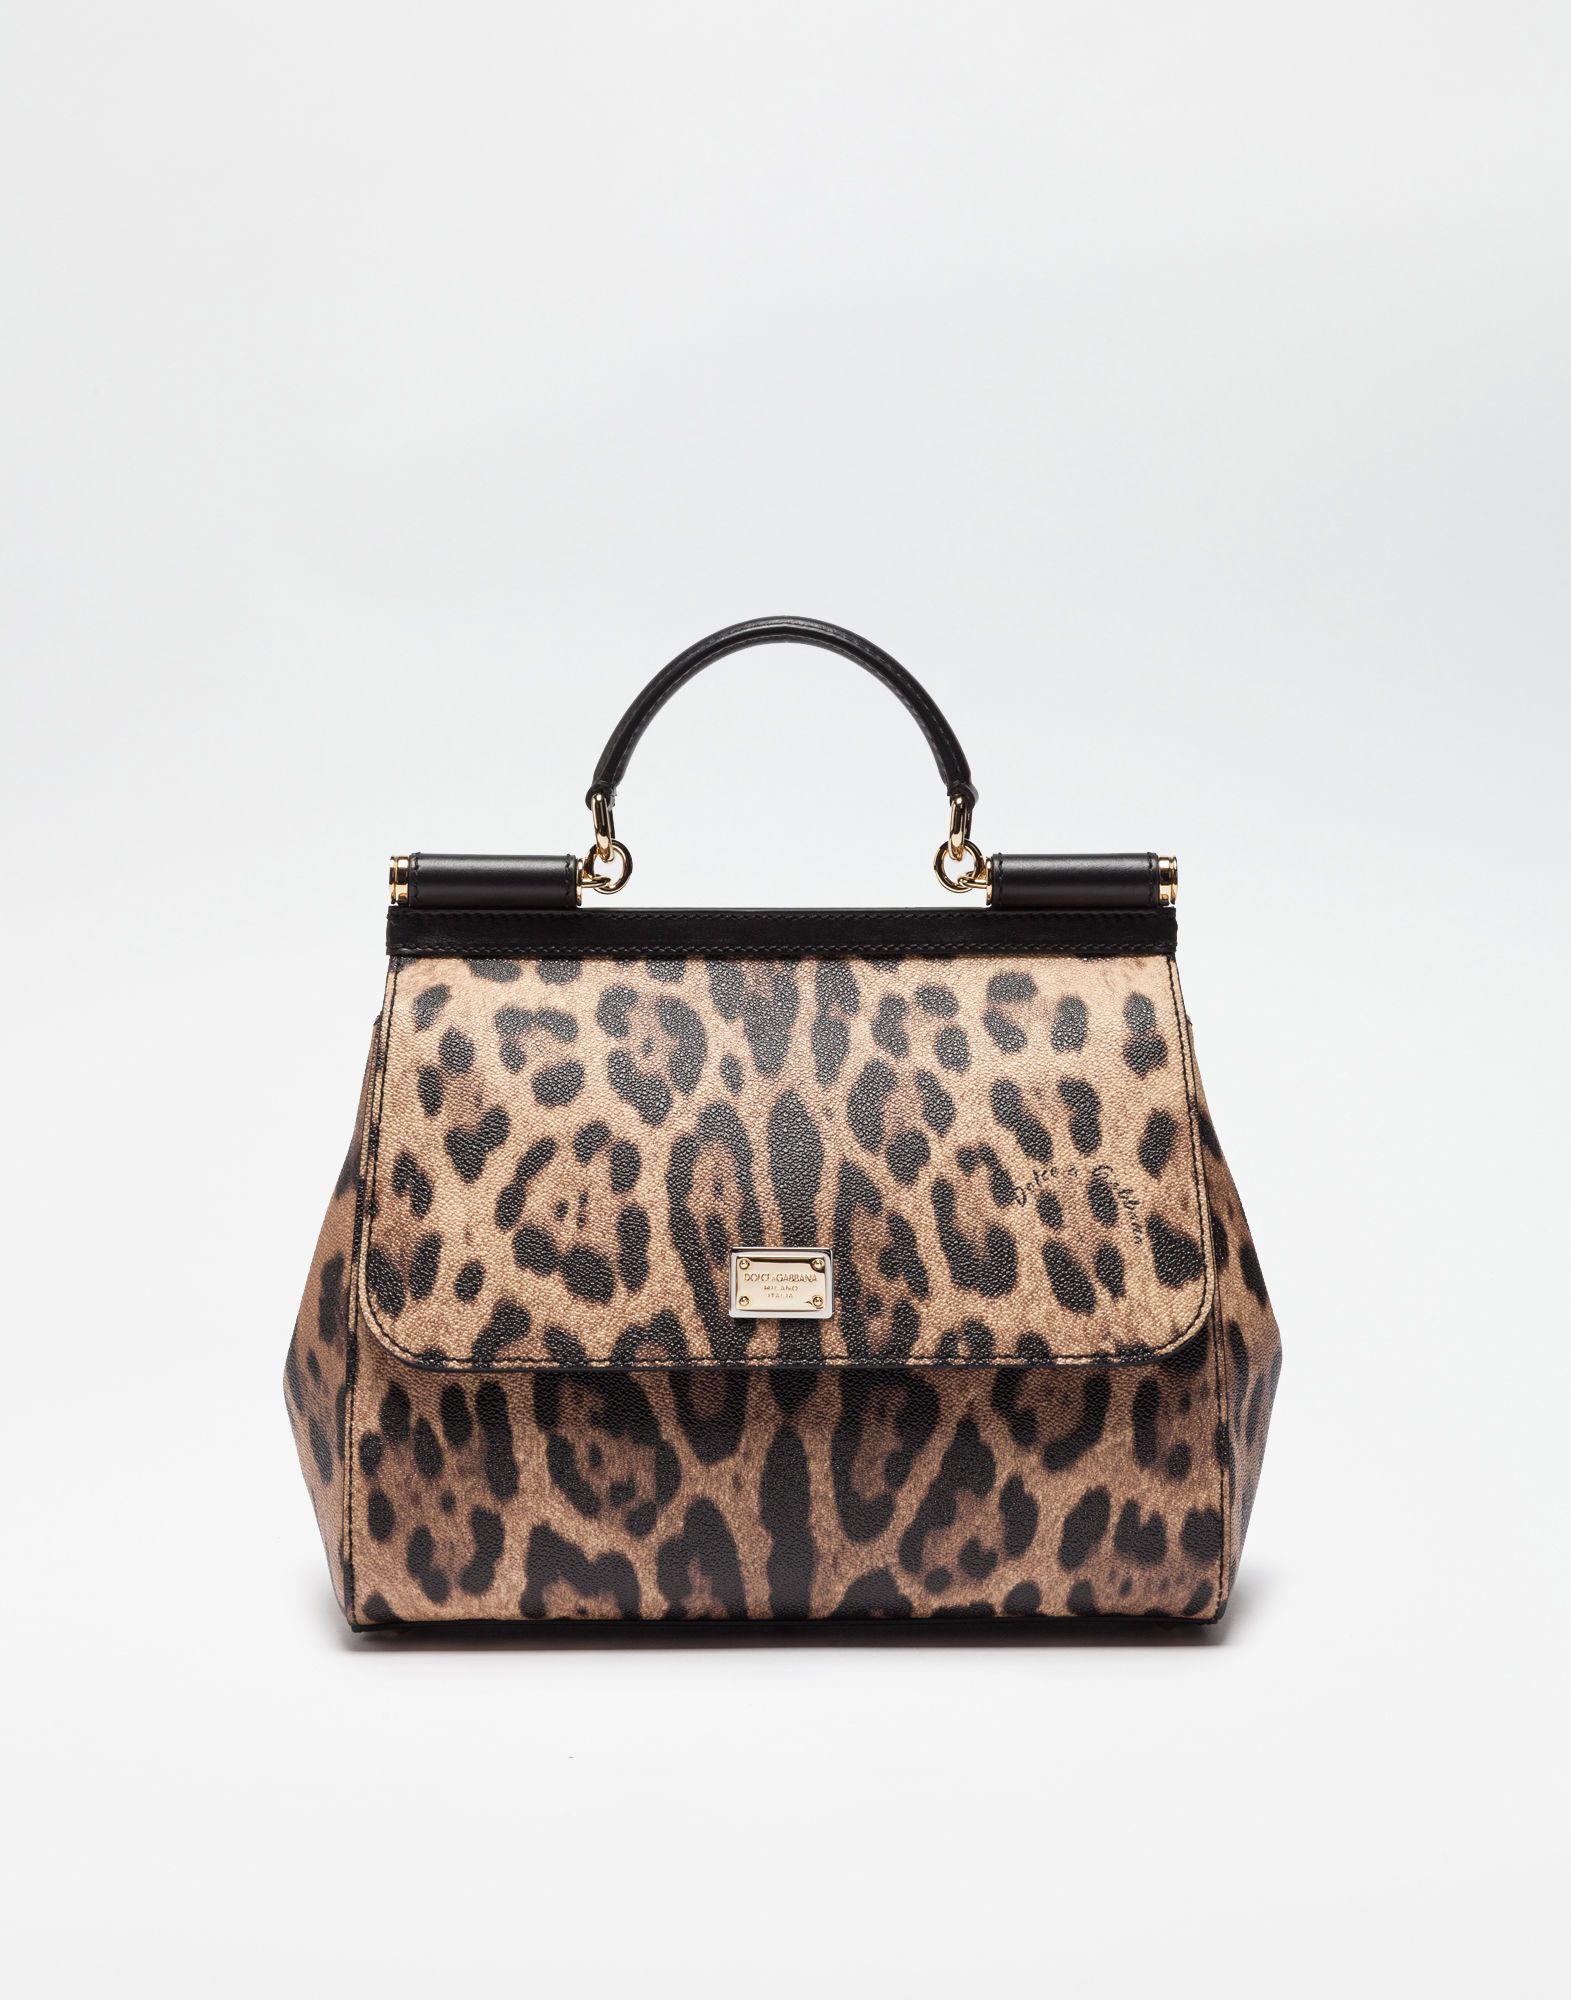 DOLCE   GABBANA REGULAR SICILY BAG IN LEOPARD TEXTURED LEATHER.   dolcegabbana  bags  polyester  leather  lining  shoulder bags  pvc  hand  bags  cotton   418fc2b687282